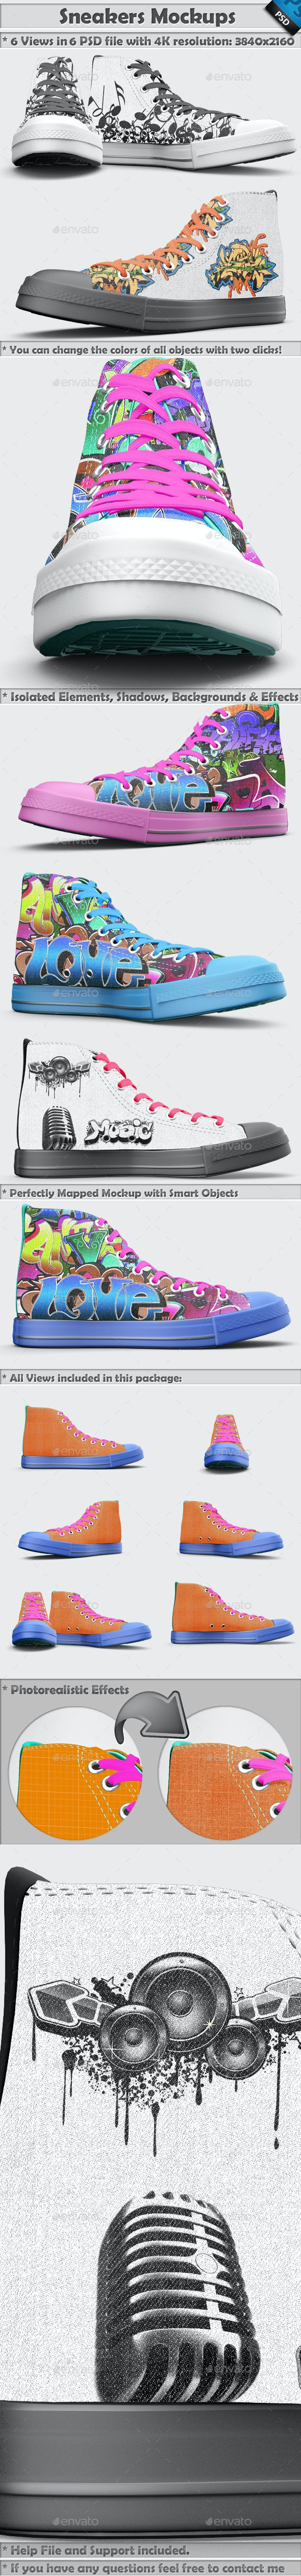 Sneakers Shoes Mockup - Miscellaneous Apparel